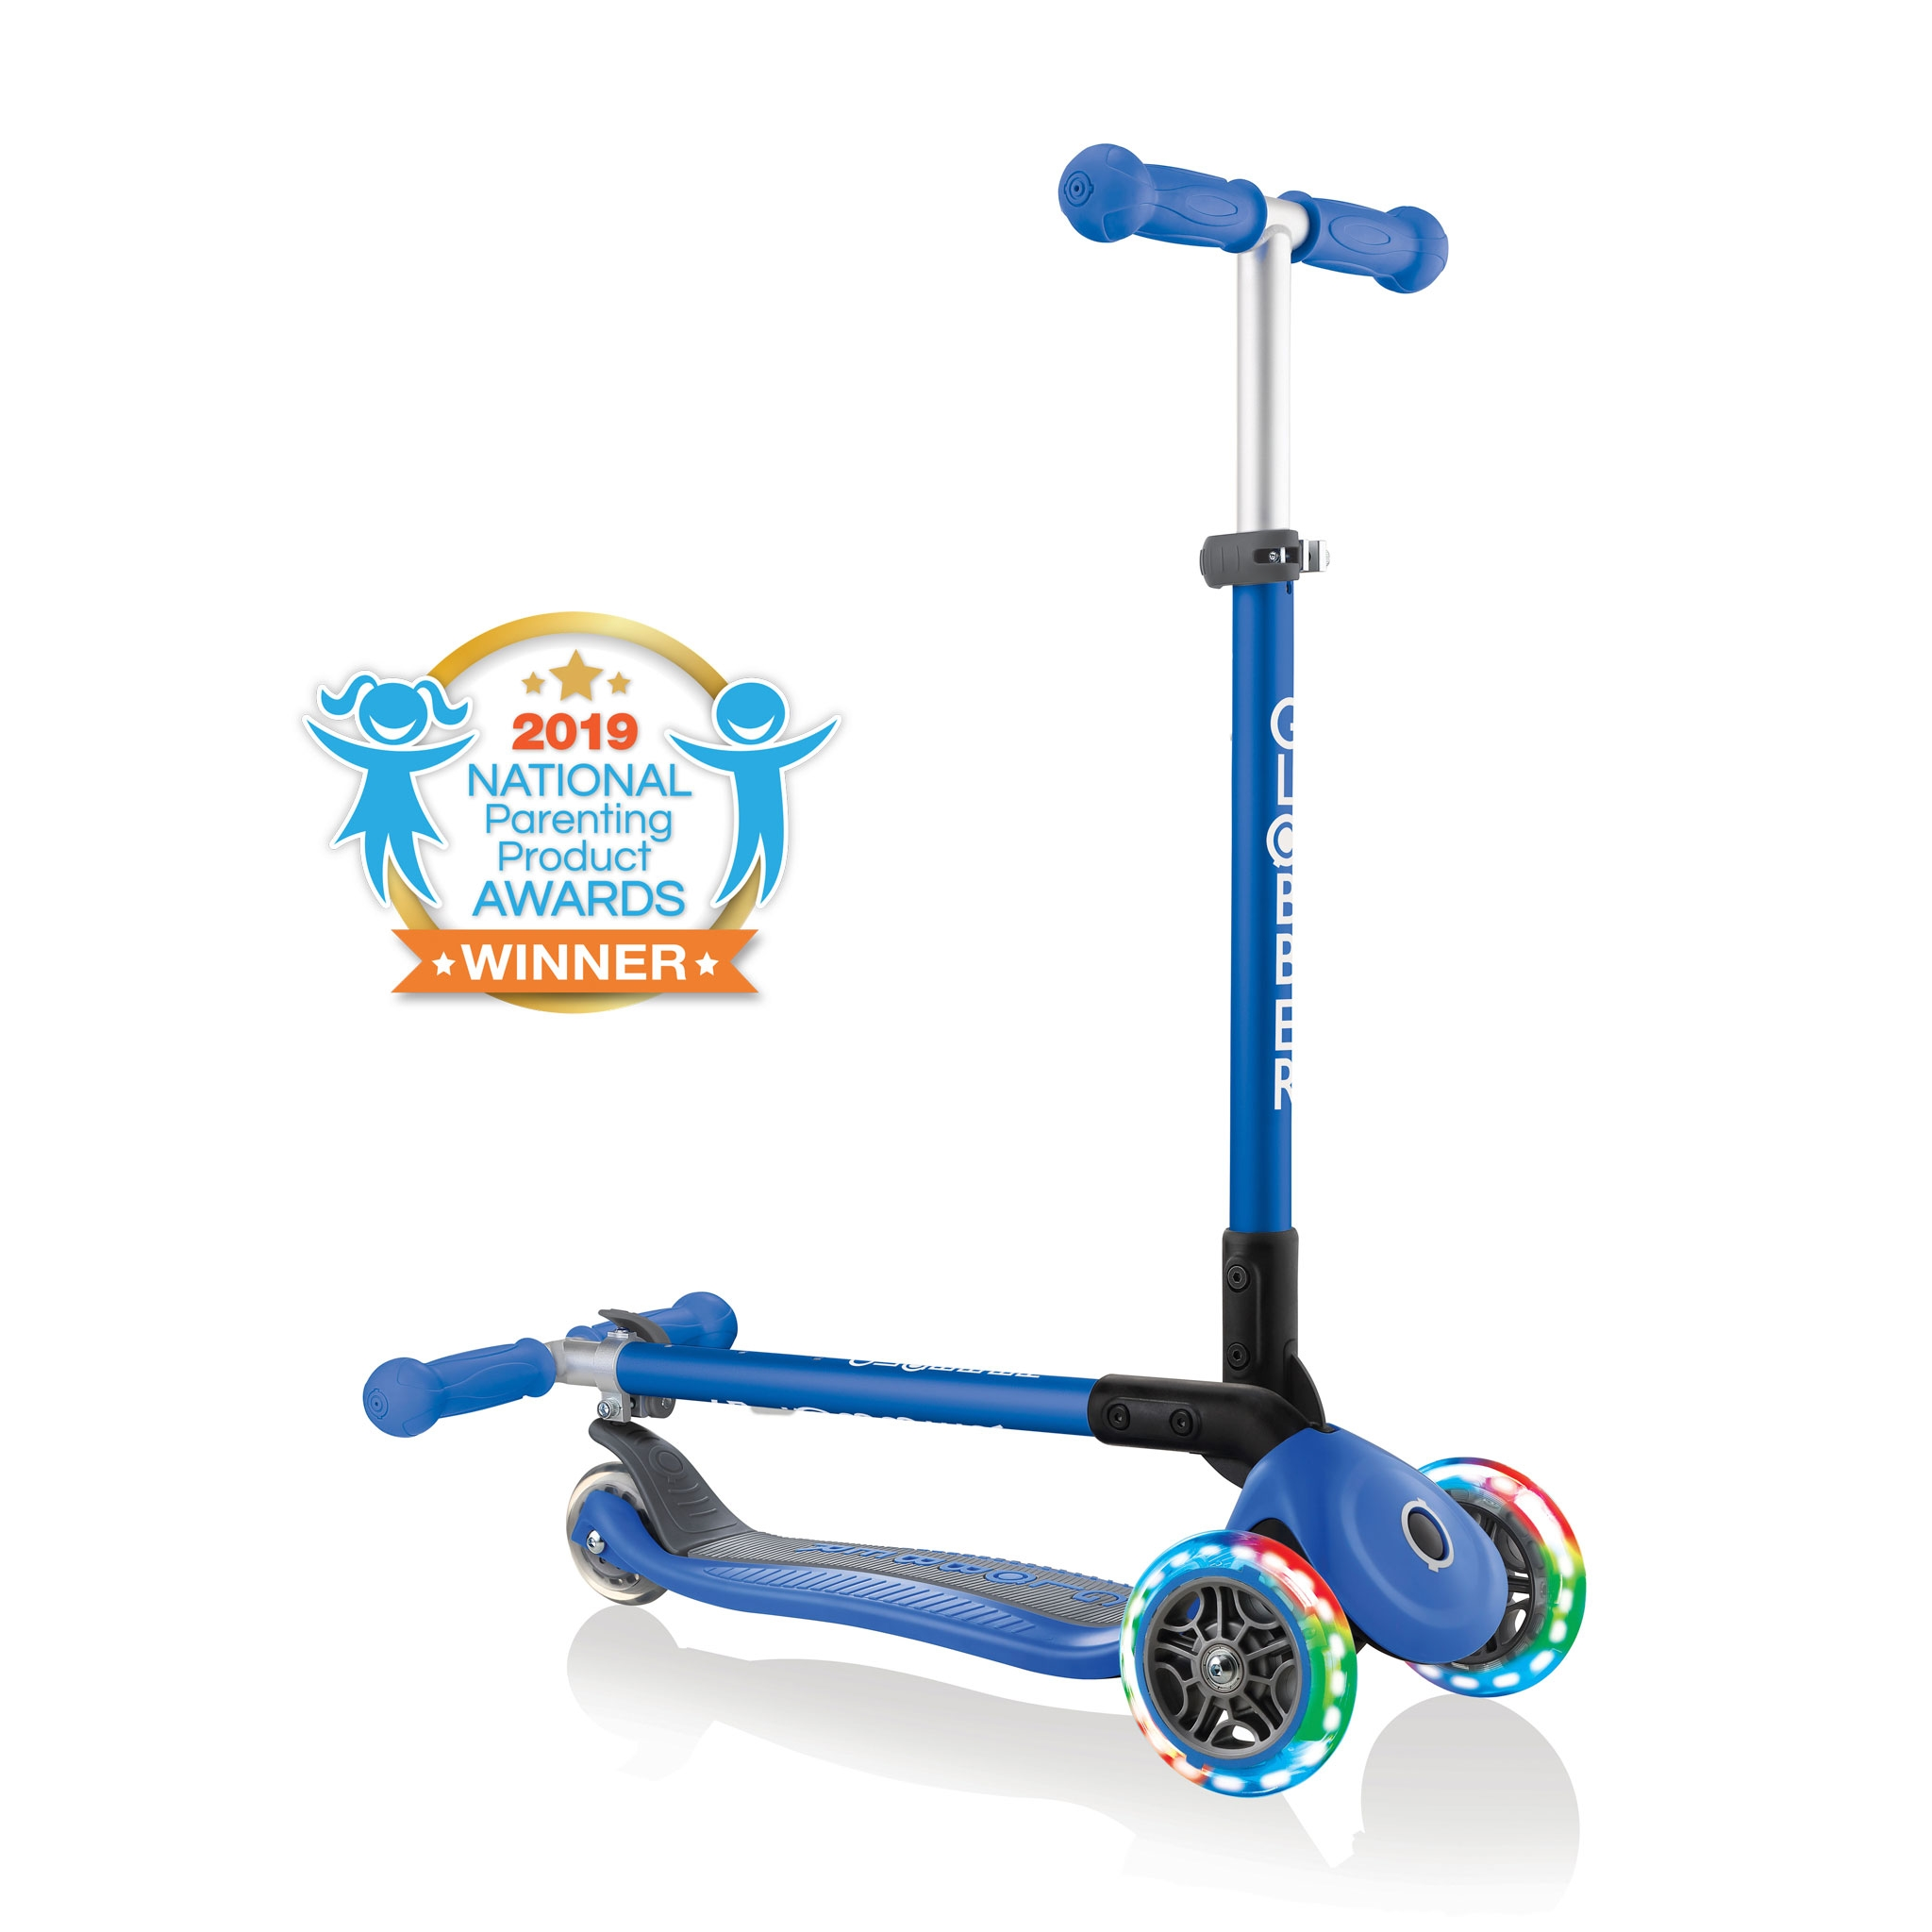 PRIMO-FOLDABLE-LIGHTS-3-wheel-fold-up-scooter-for-kids-navy-blue2